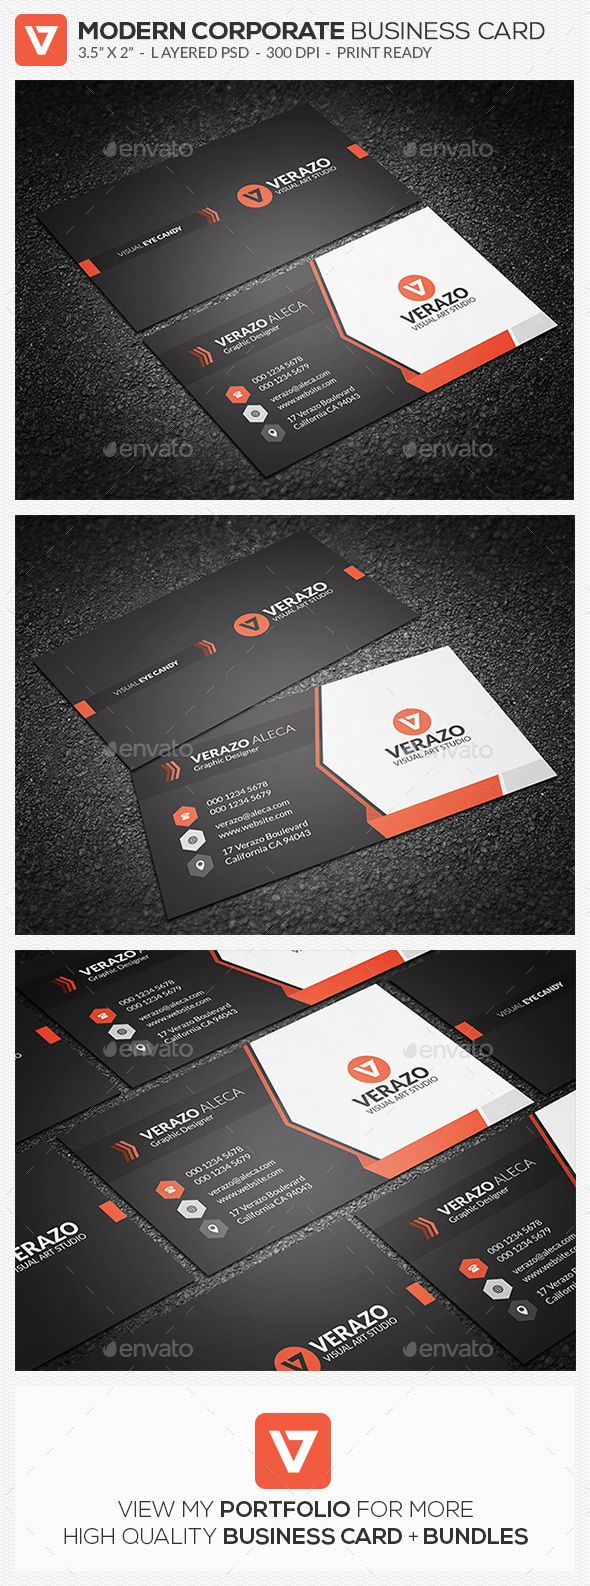 572 best Business Card Inspiration images on Pinterest | Business ...